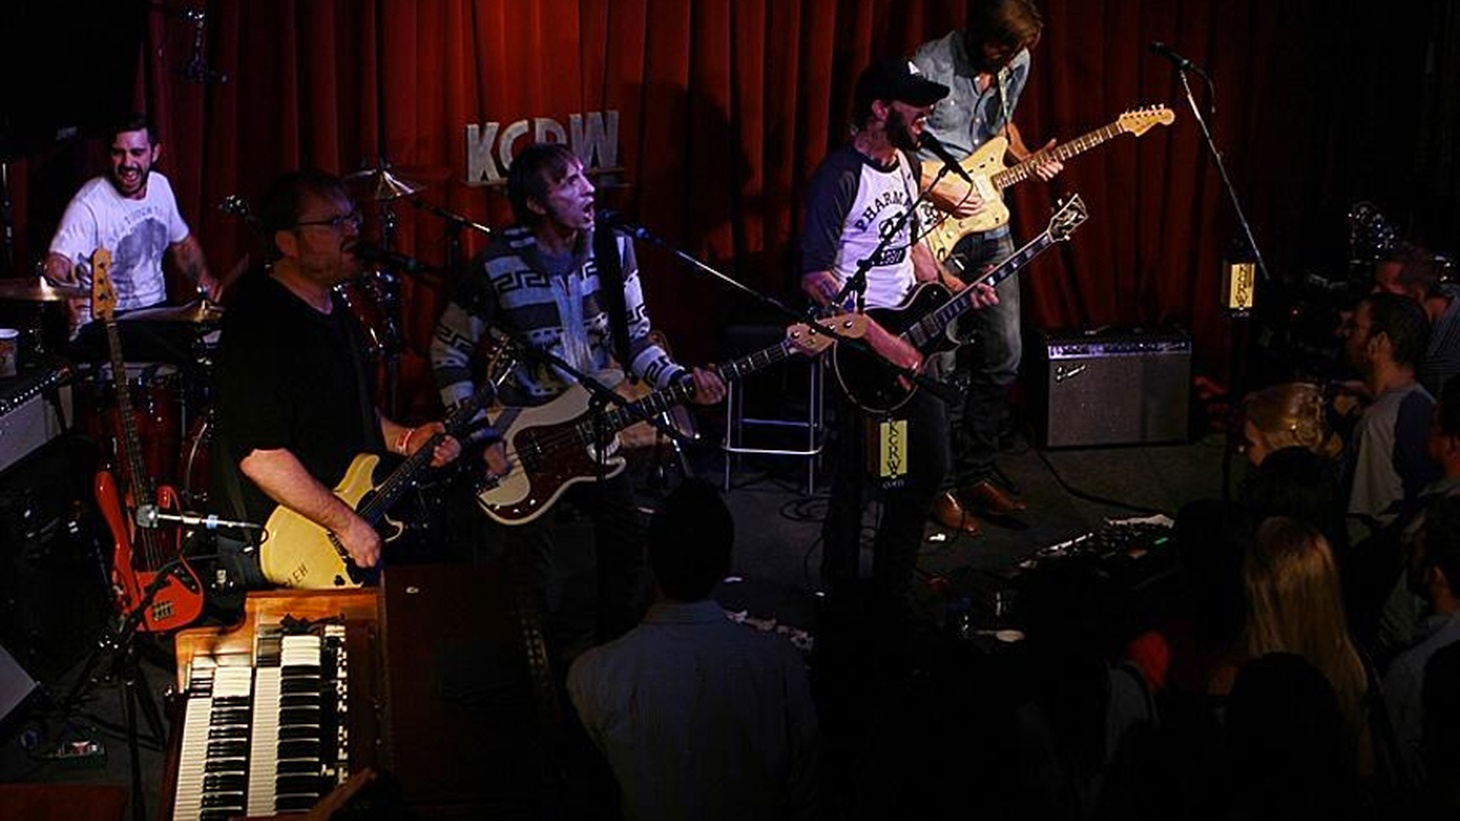 KCRW was able to corral Band of Horses to perform a career-spanning set in the intimate setting of KCRW's Apogee Sessions just a couple of weeks ago.